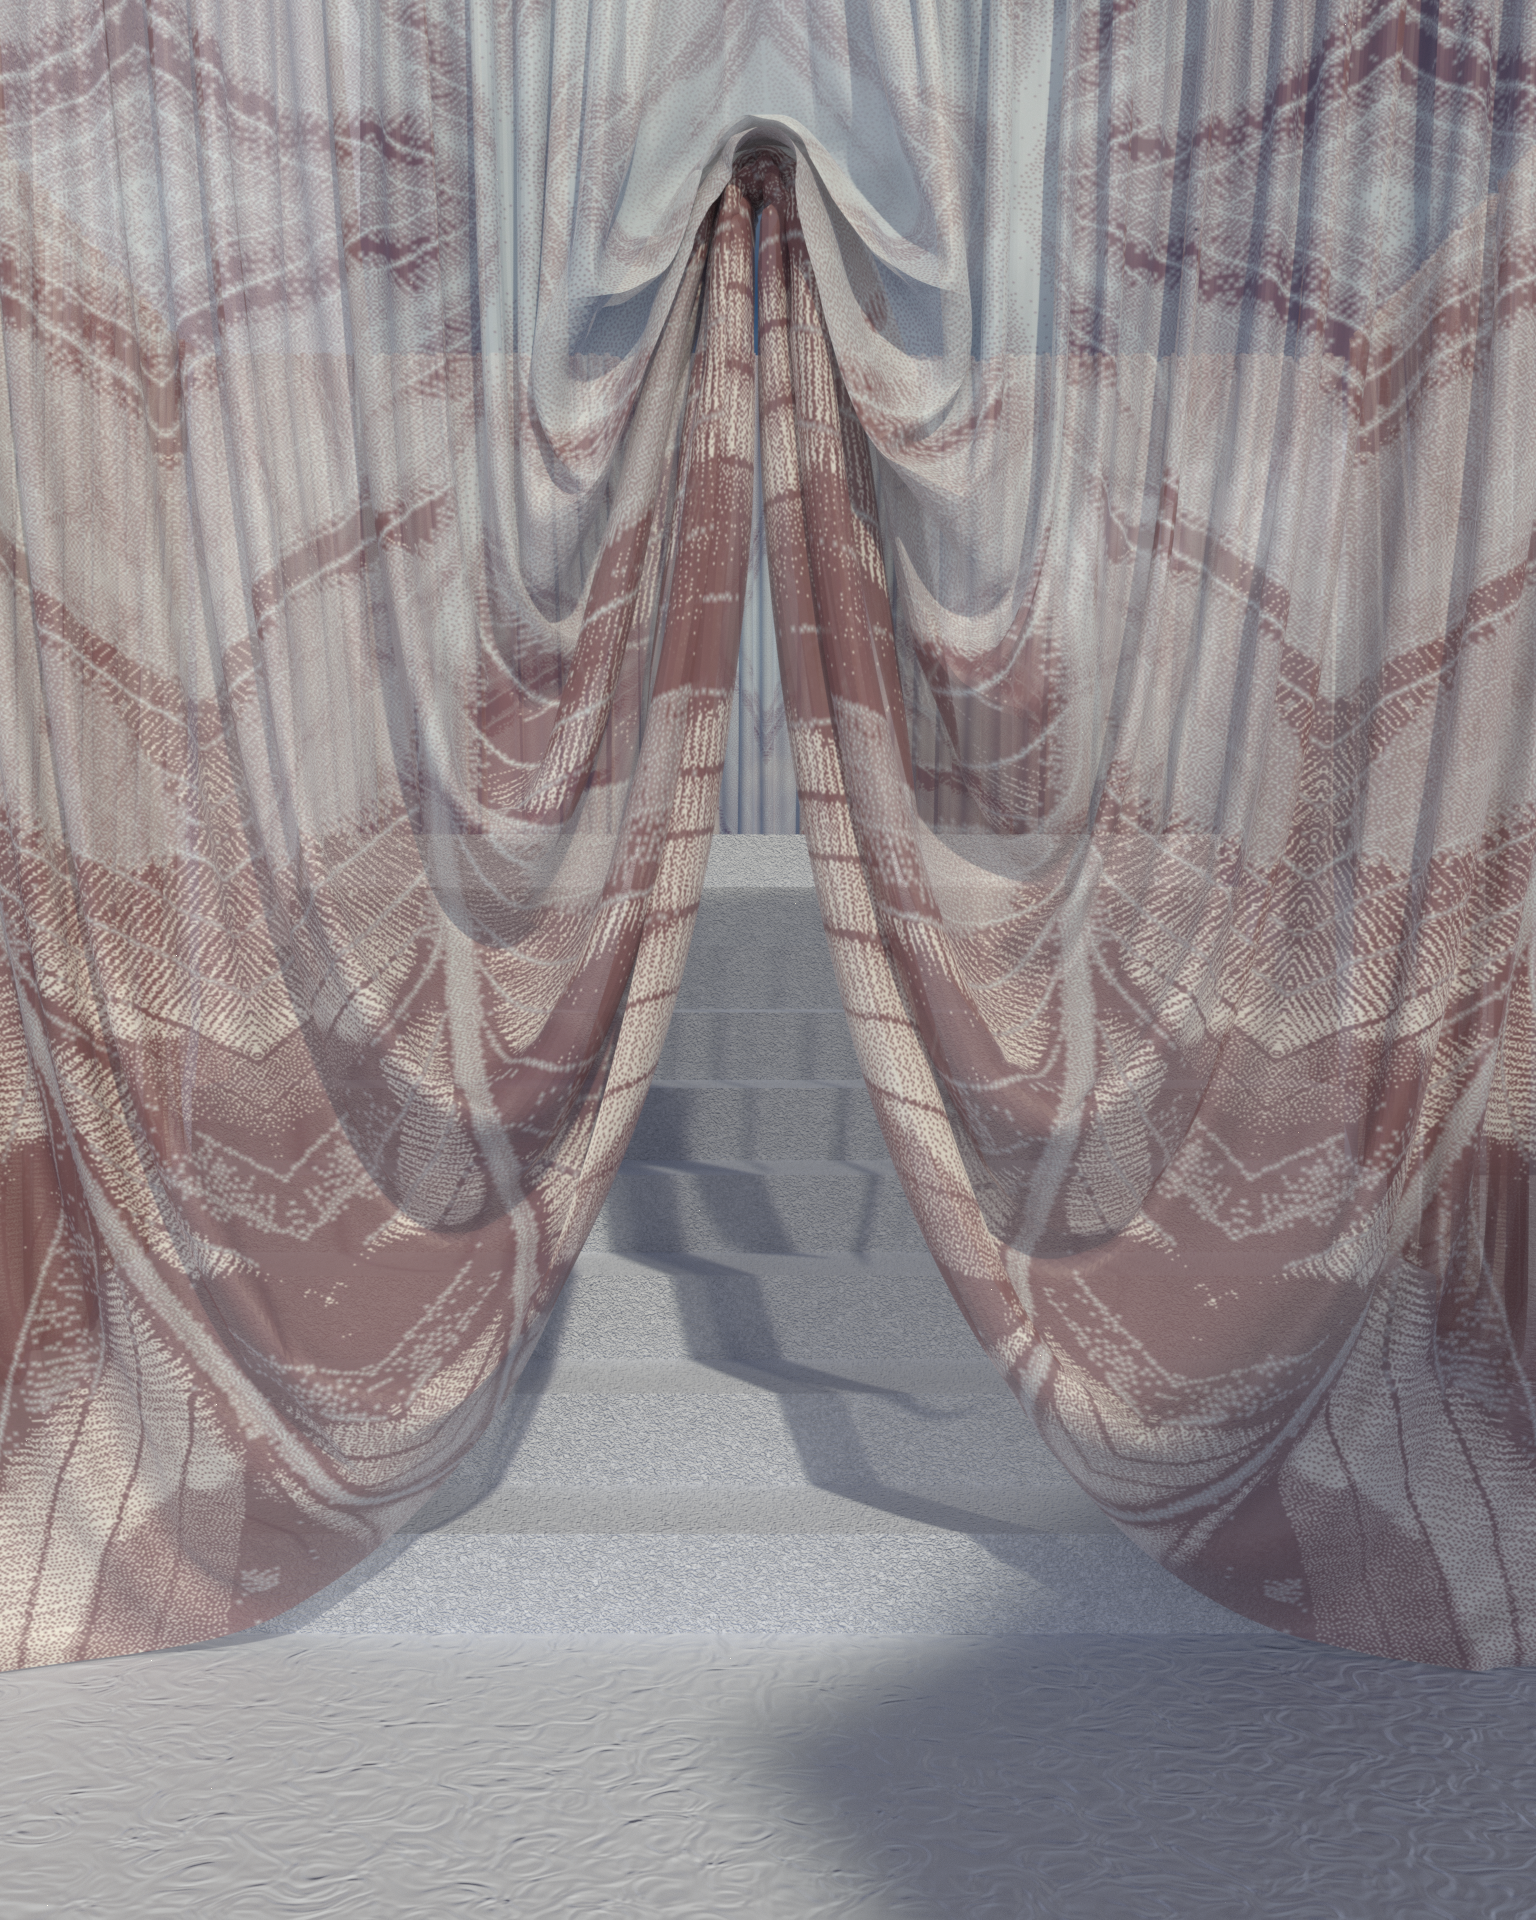 LEEBECCA x EMDAL > COLLAB  Soft & Serene, 3D rederings with Emdal textiles in transparent drapes